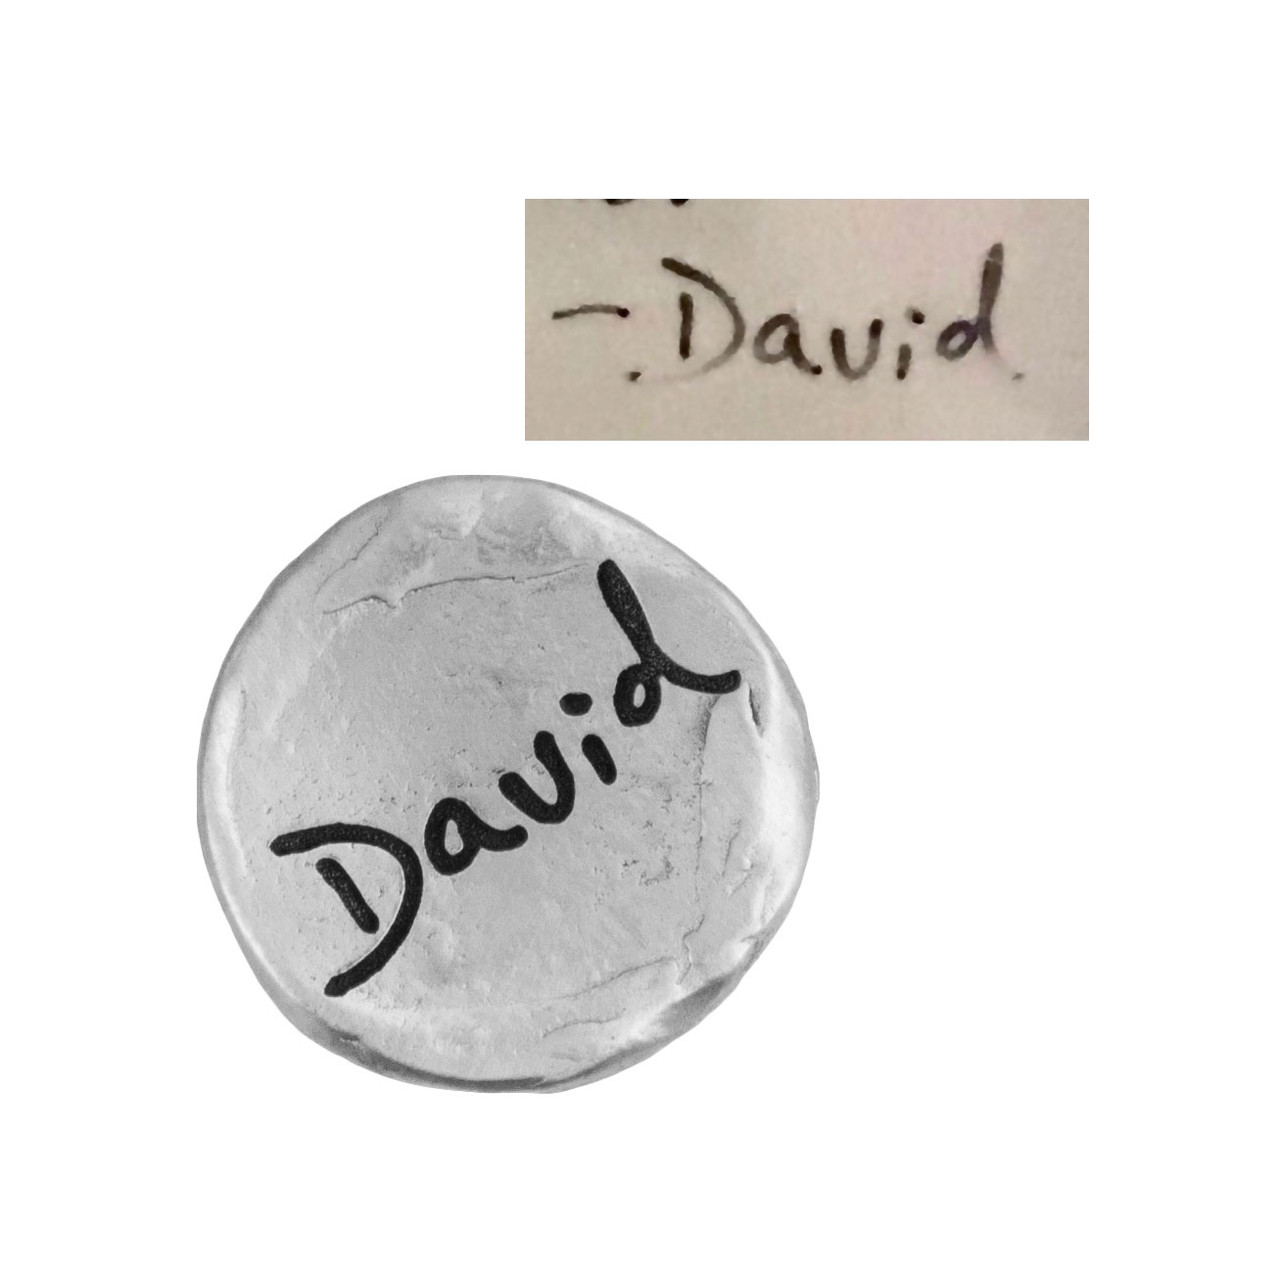 Your handwriting on a fine pewter pocket charm, shown on white, with the original handwriting